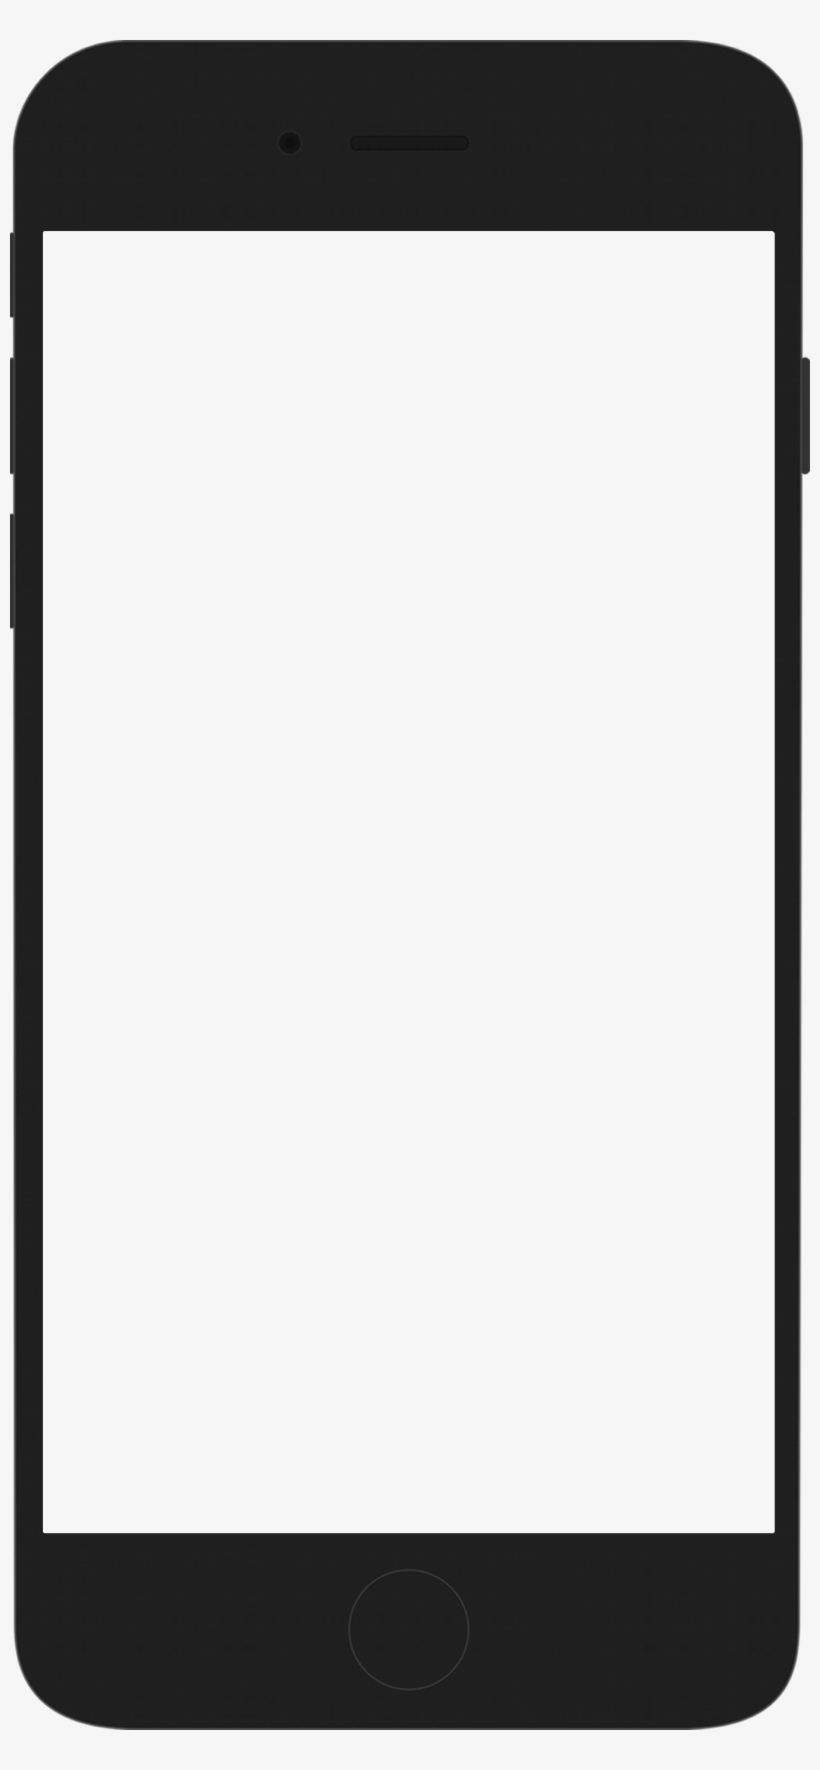 Phone Picture Frame Images Craft Decoration Ideas - Mobile Frame Png In Hand, transparent png #2545686